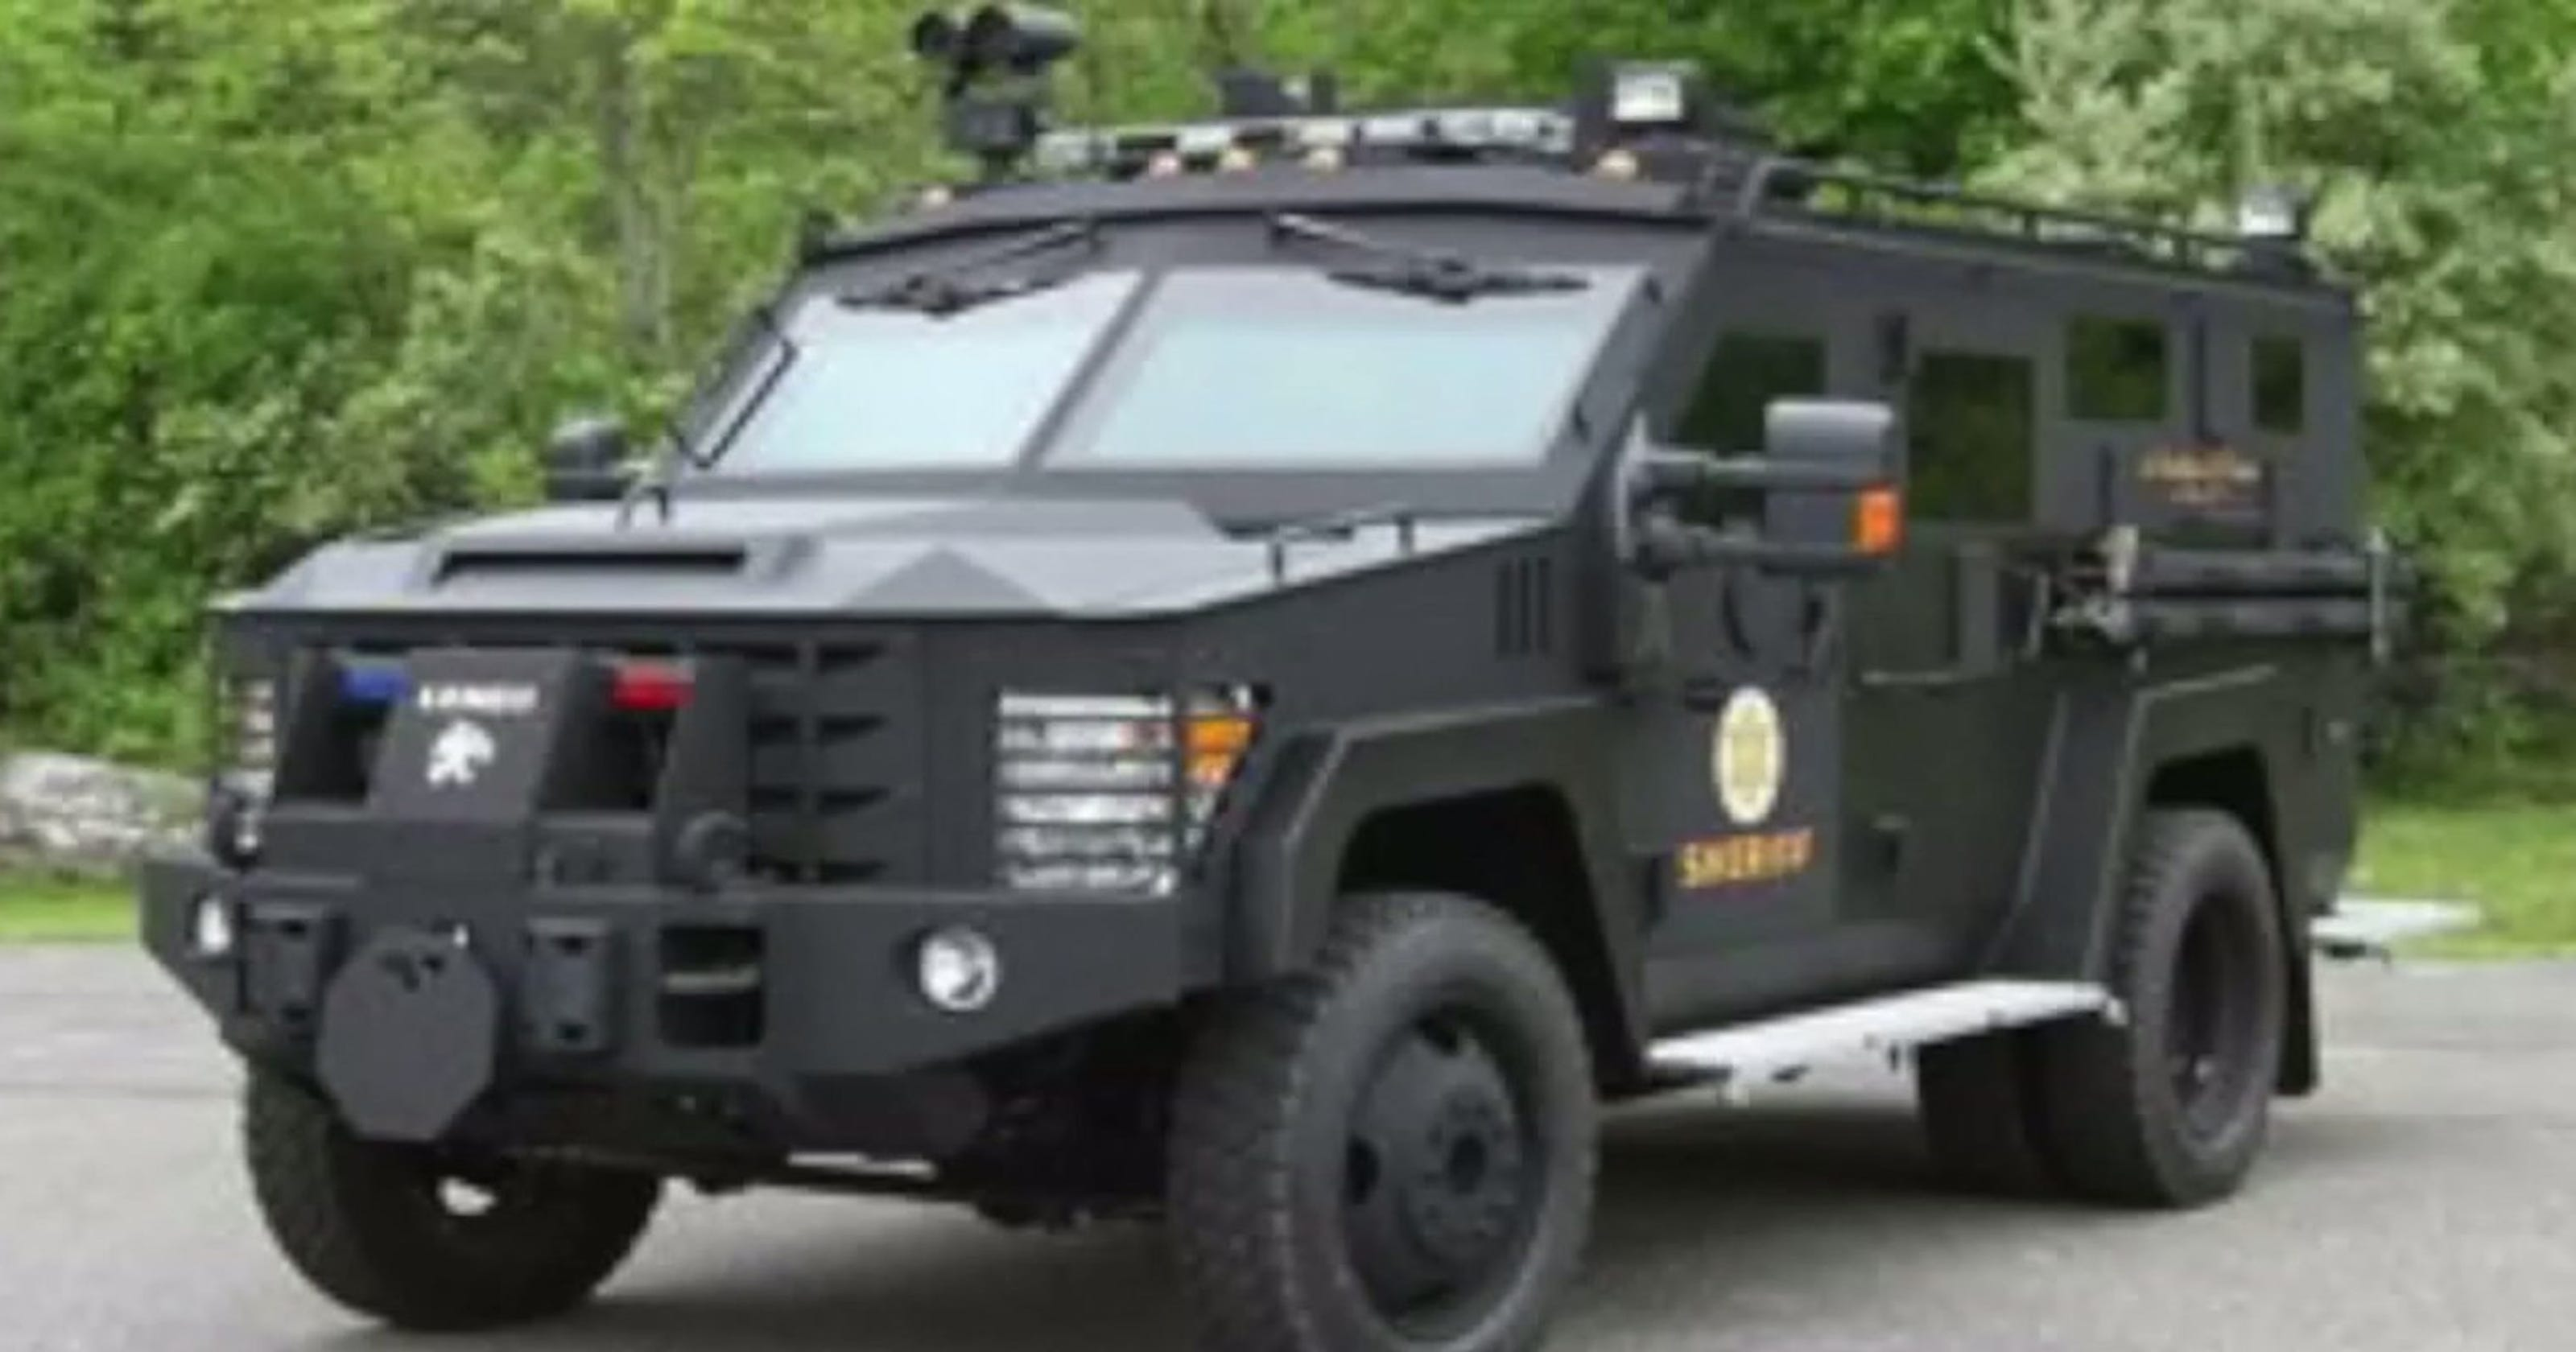 Bloomington Police will purchase armored vehicle over objections